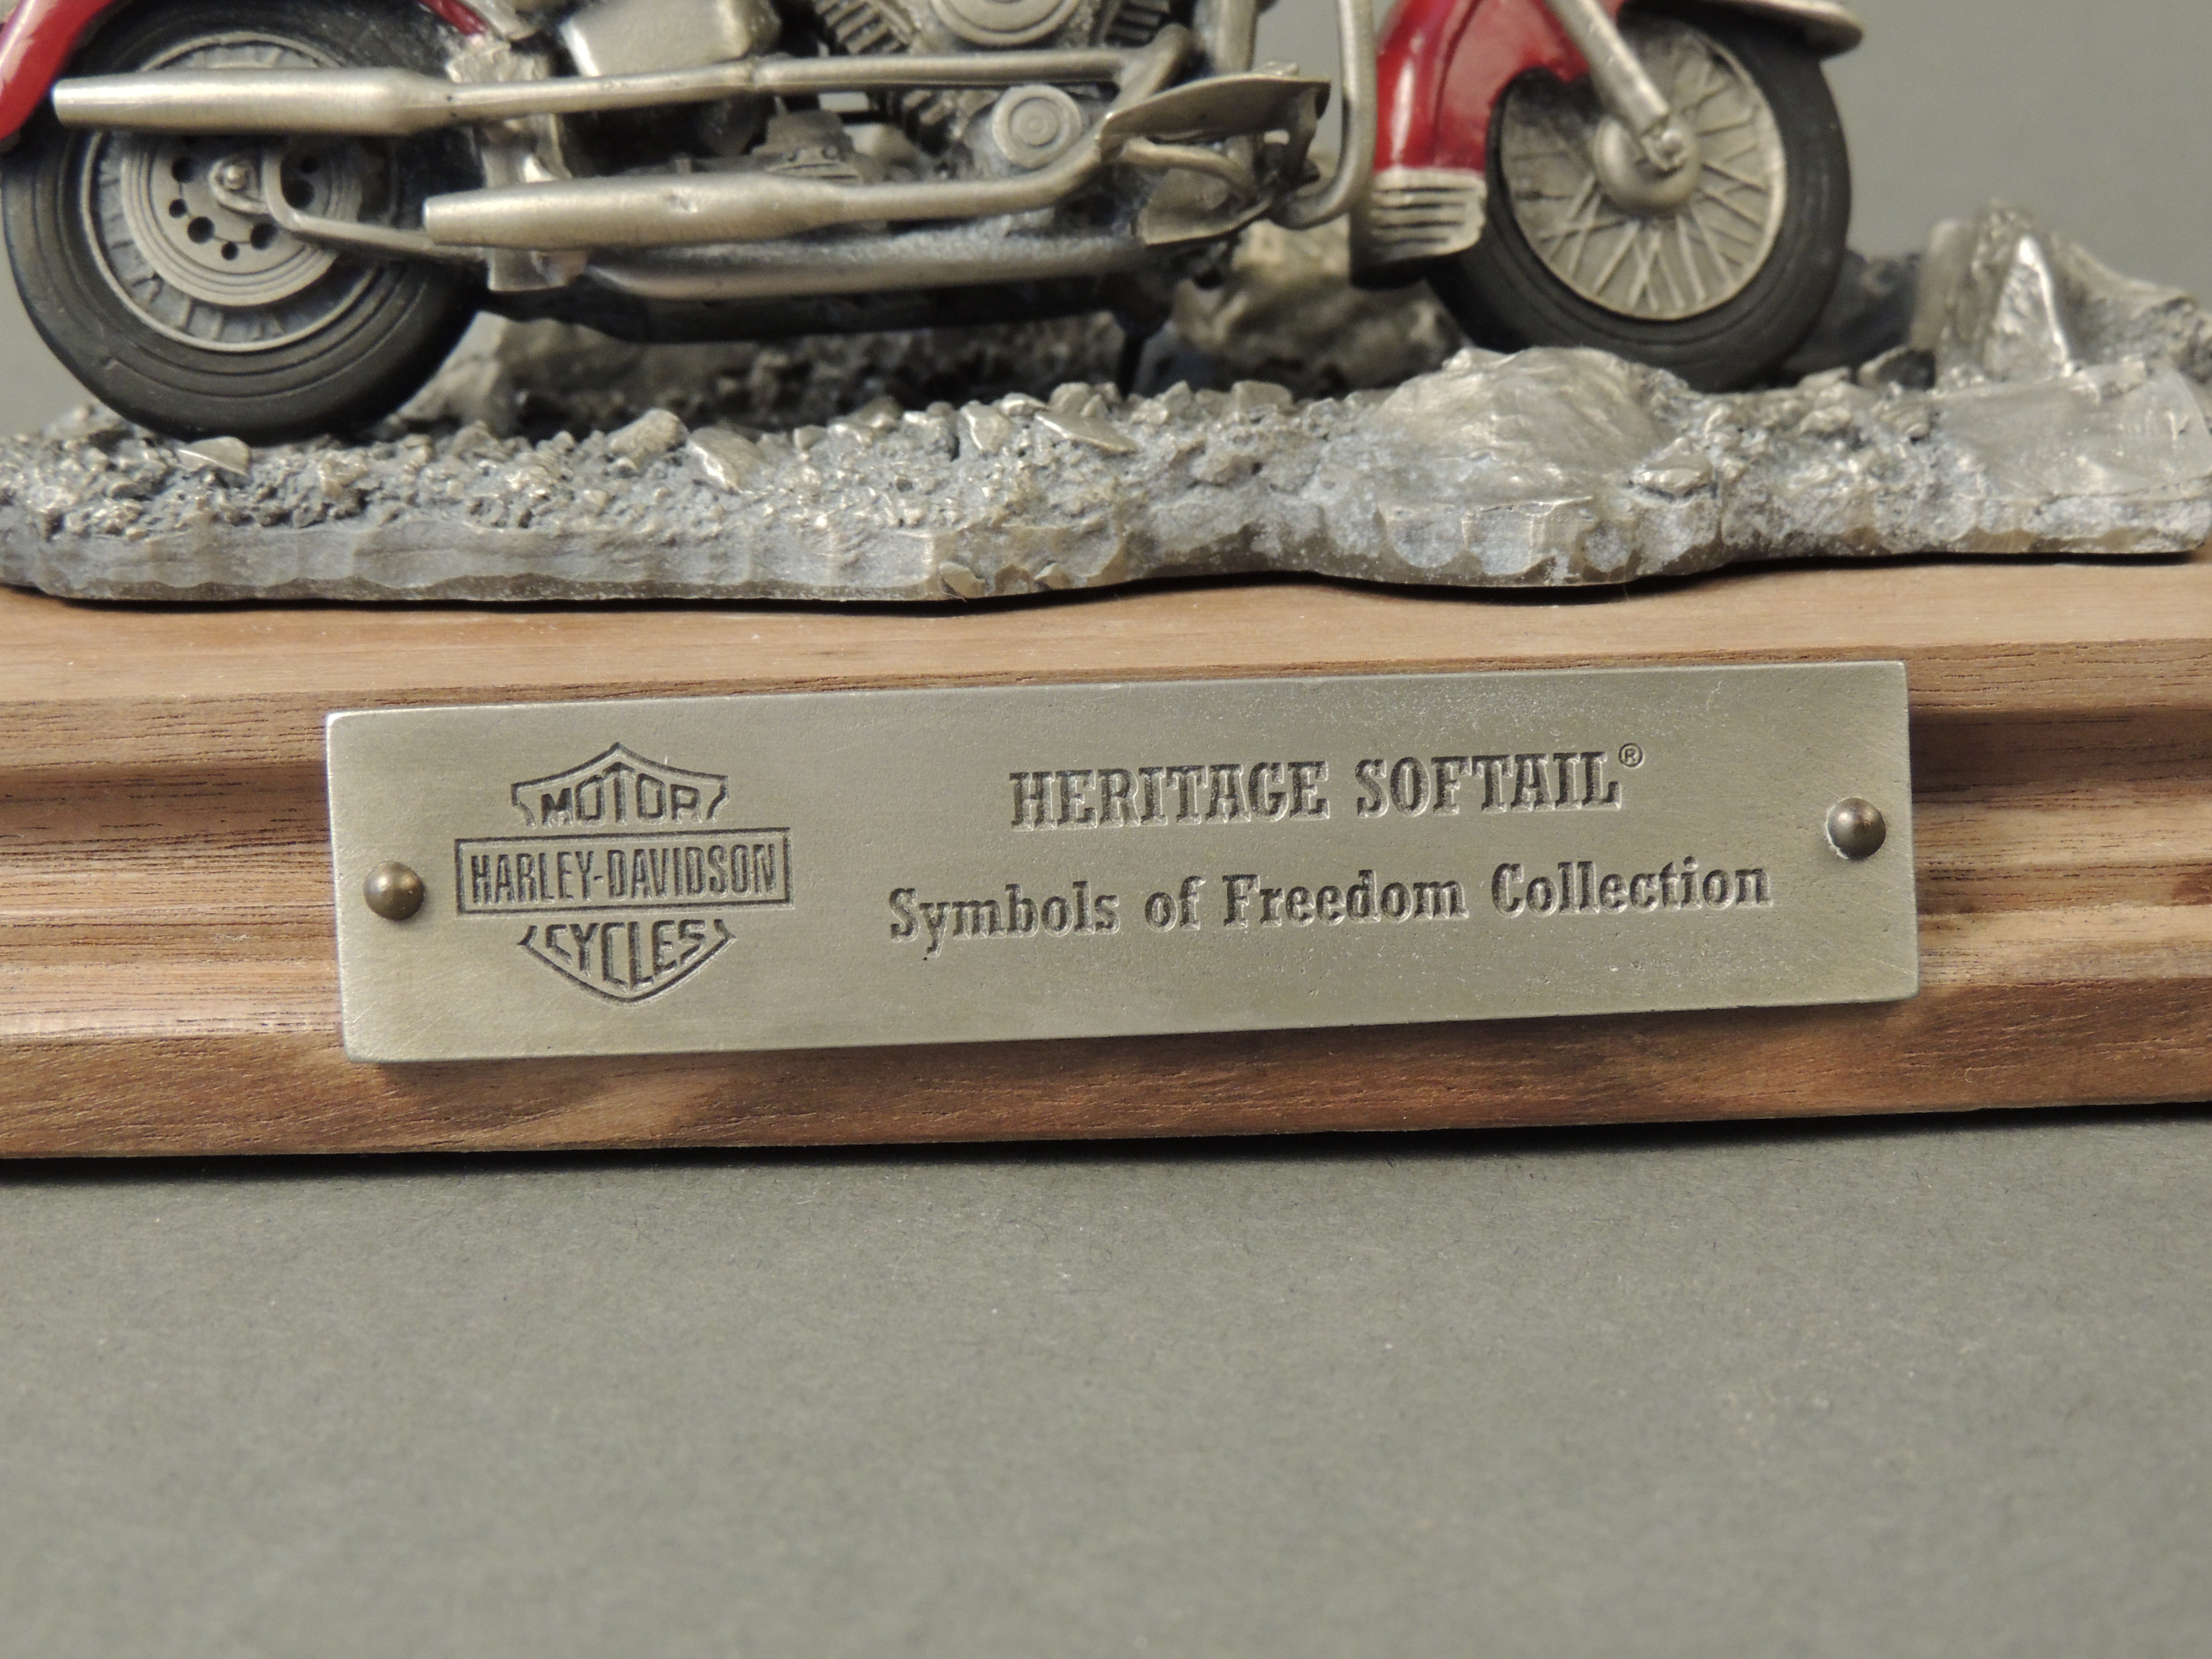 HD Symbols of Freedom Collection Heritage Softail